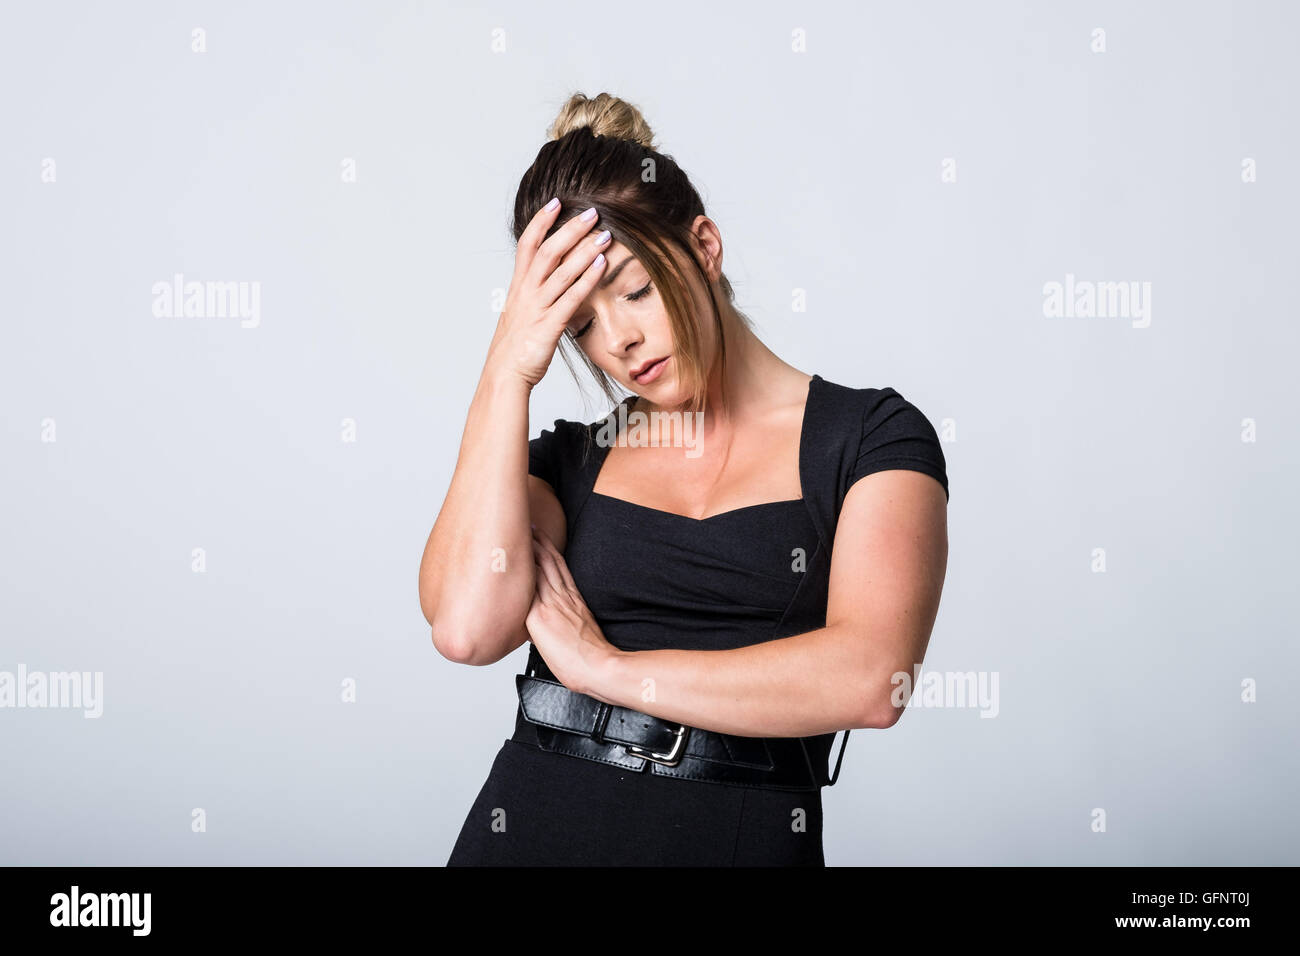 Exhausted unwell woman in a black dress with a hand on her forehead - Stock Image